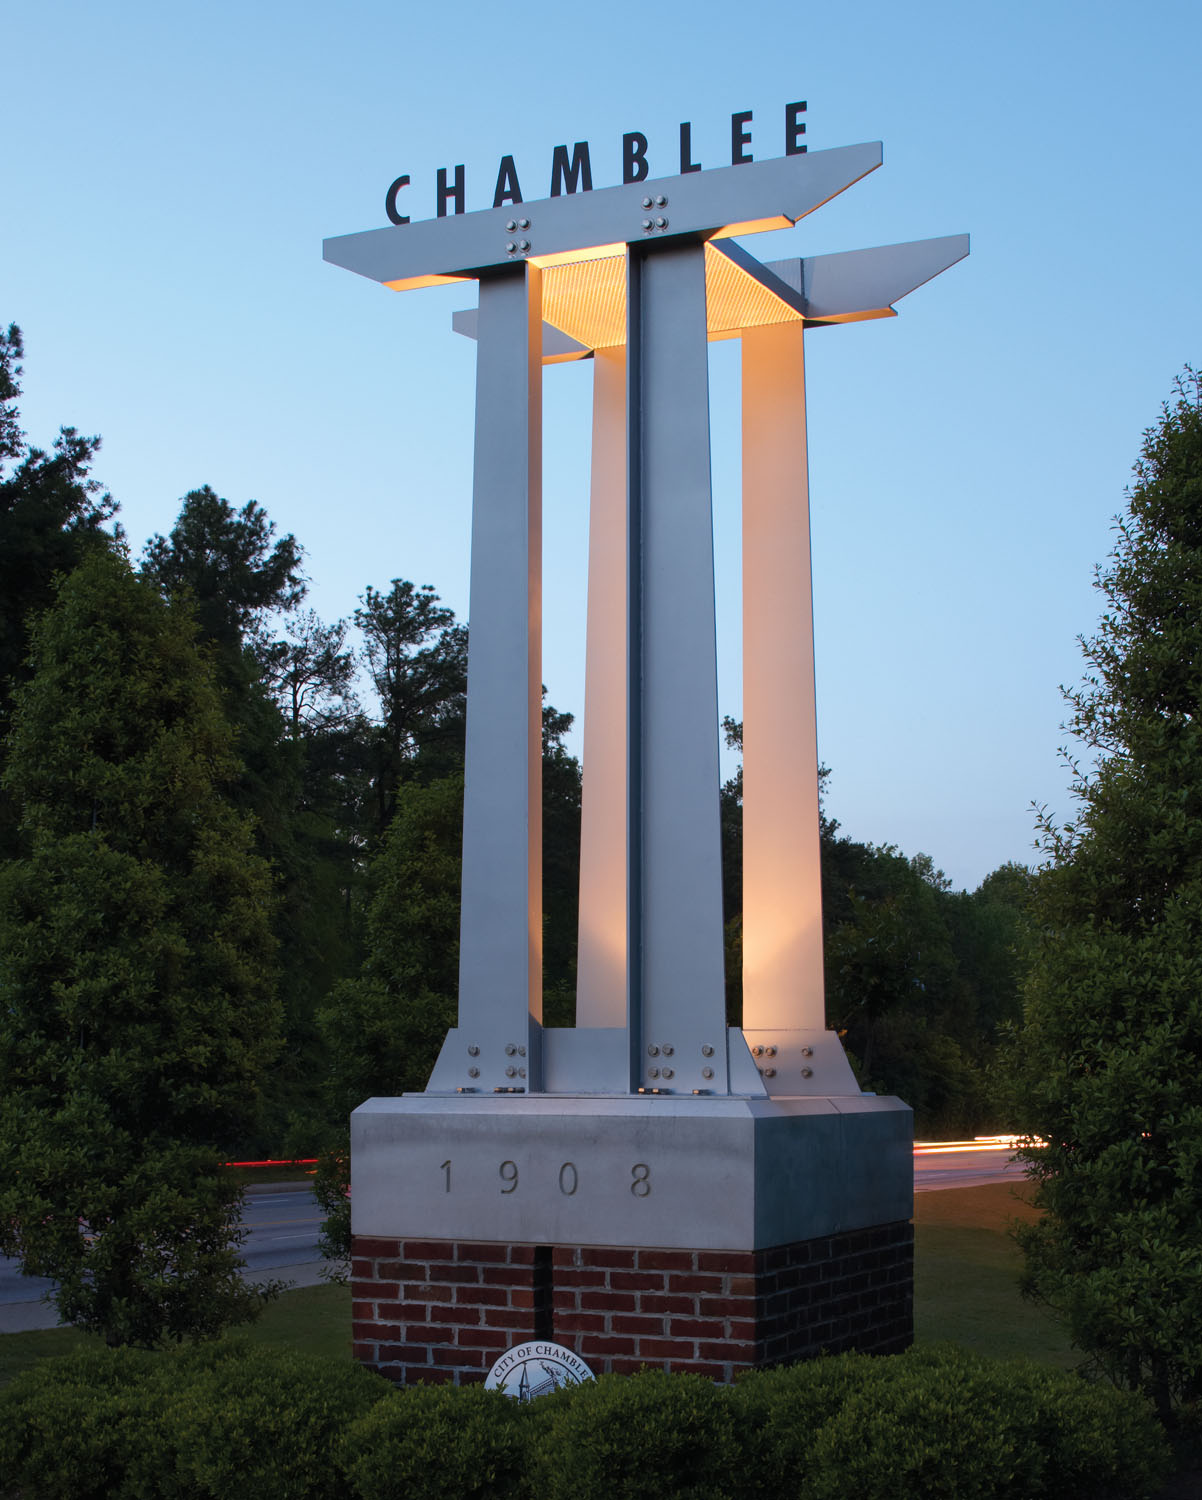 Chamblee Sign